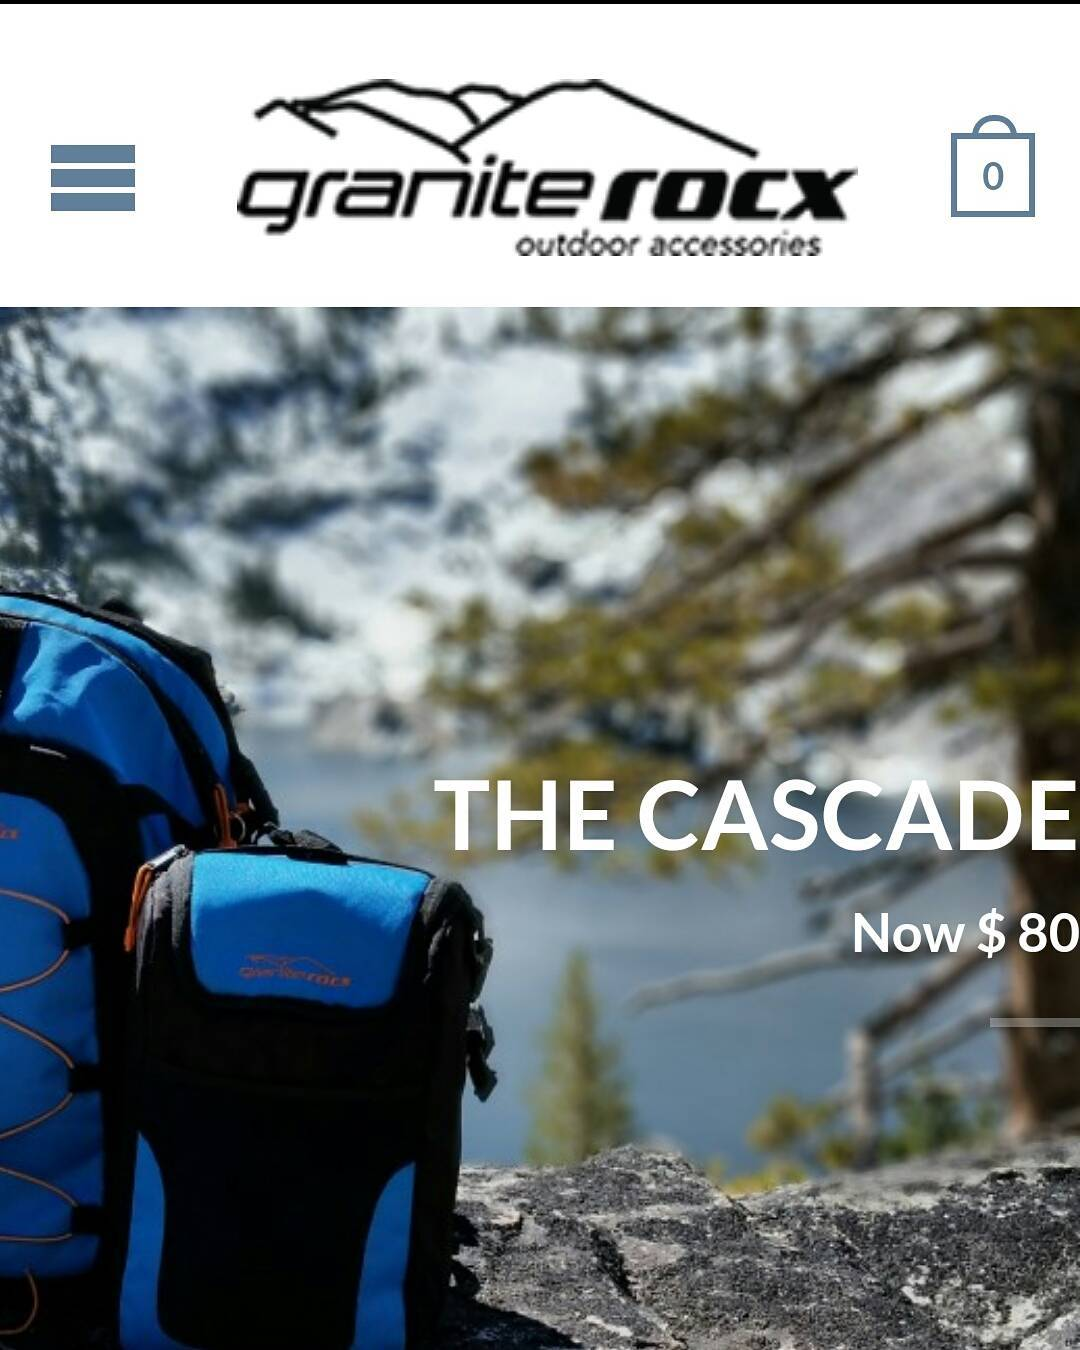 We've launched our new website!  Take a look and let us know what you think!  graniterocx.com,  link is in our profile also.  #getoutside #backpacks #coolers #adventure #graniterocx #outdoorsrocx